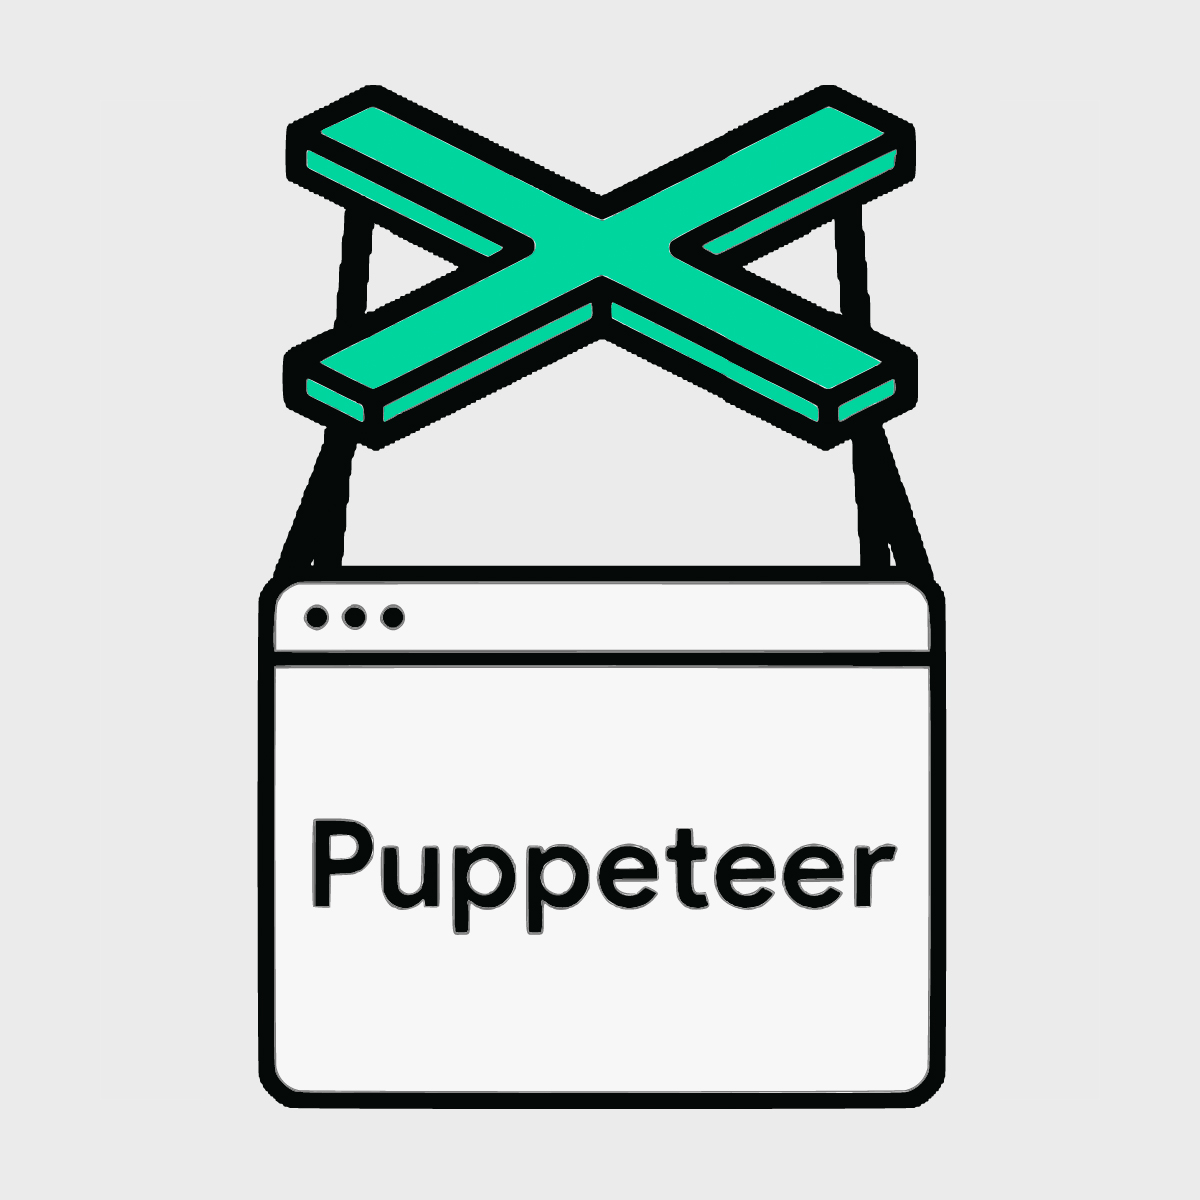 Getting to Know Puppeteer Using Practical Examples